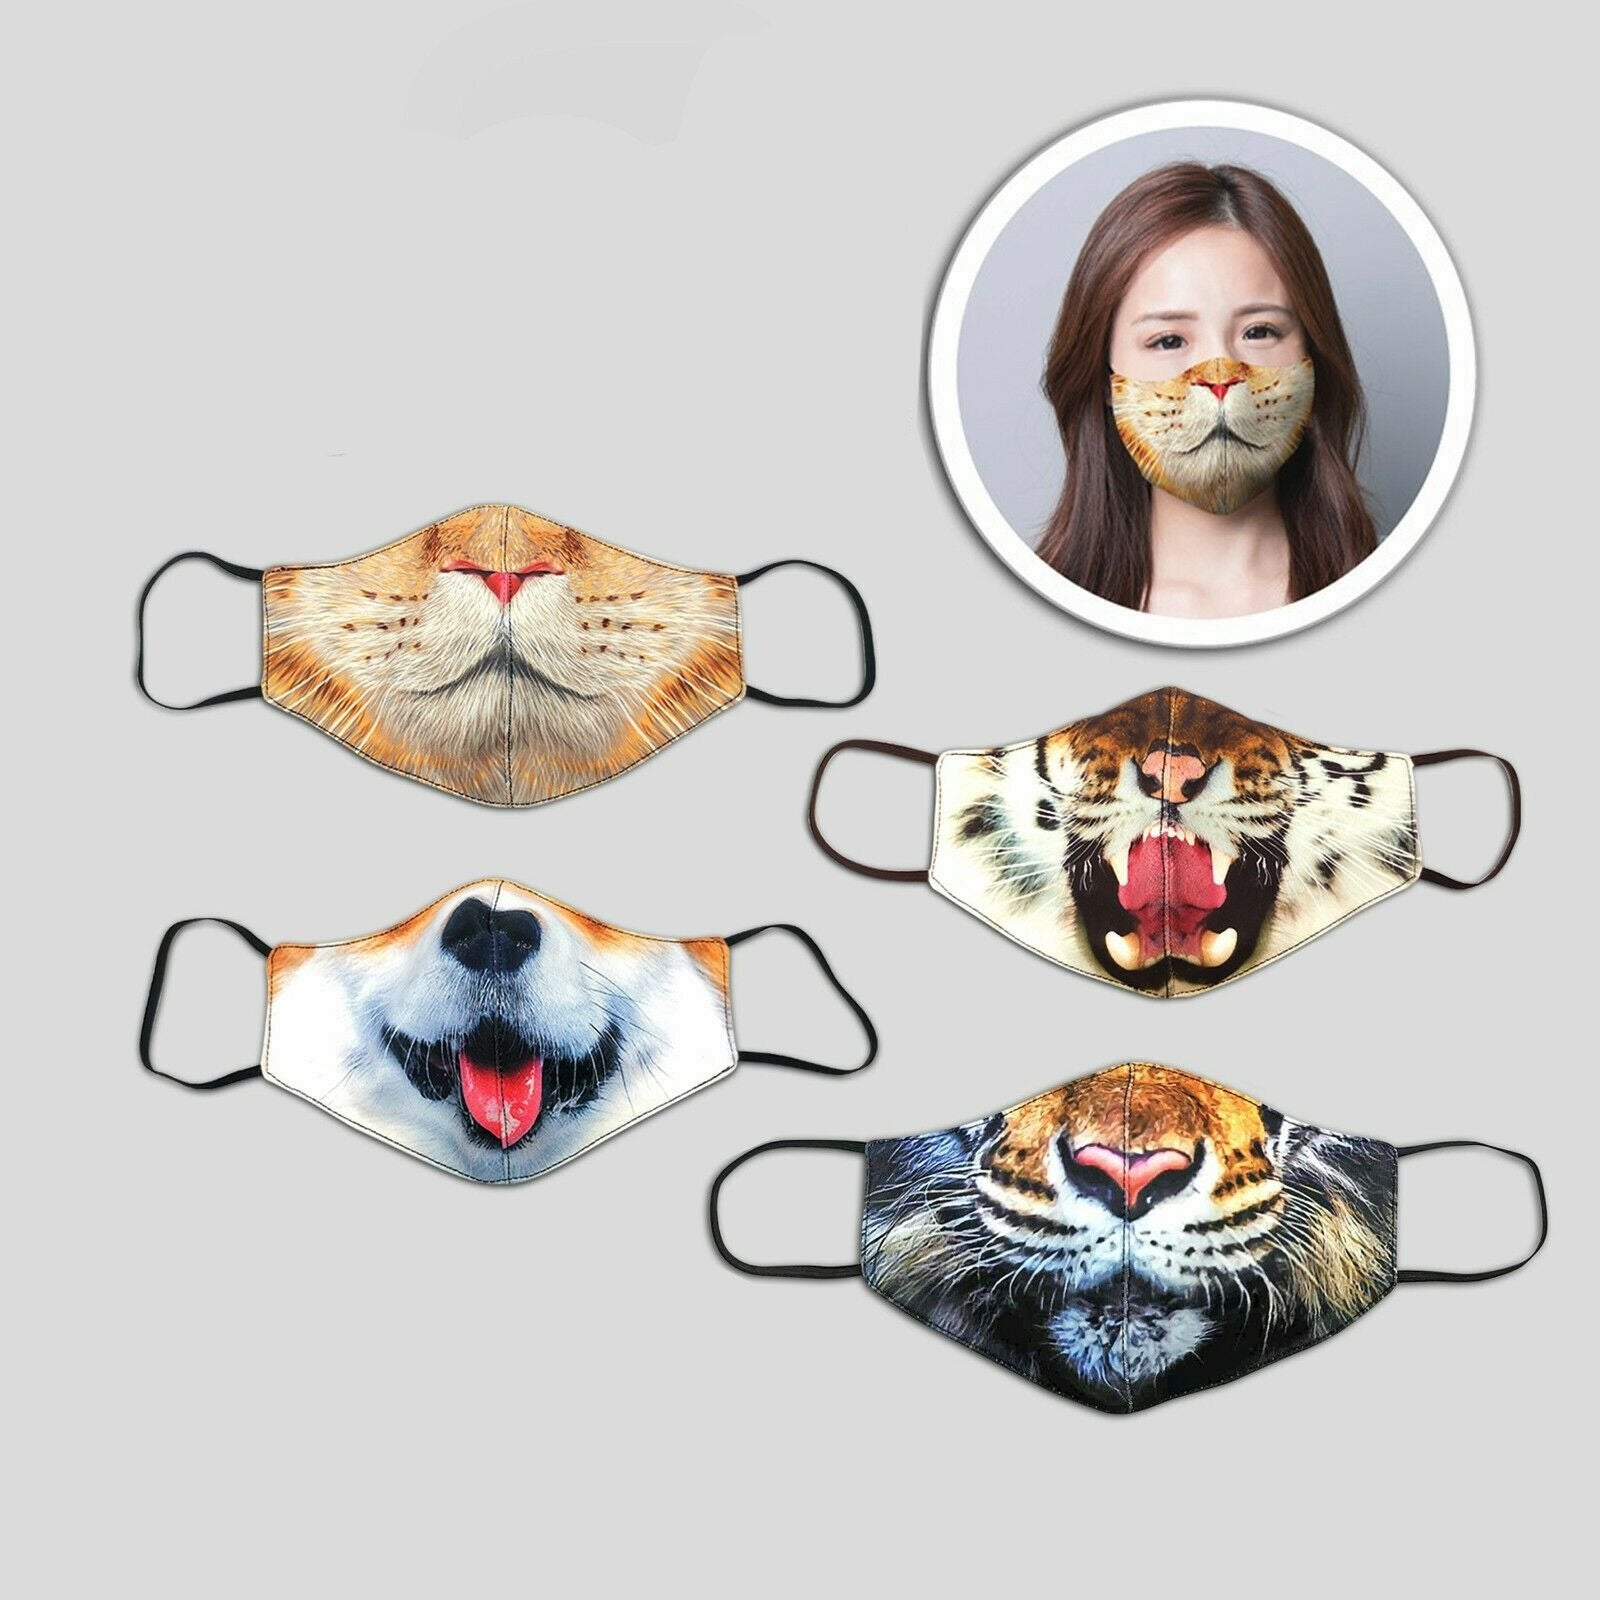 3 Layer Animal Face Masks for Kids